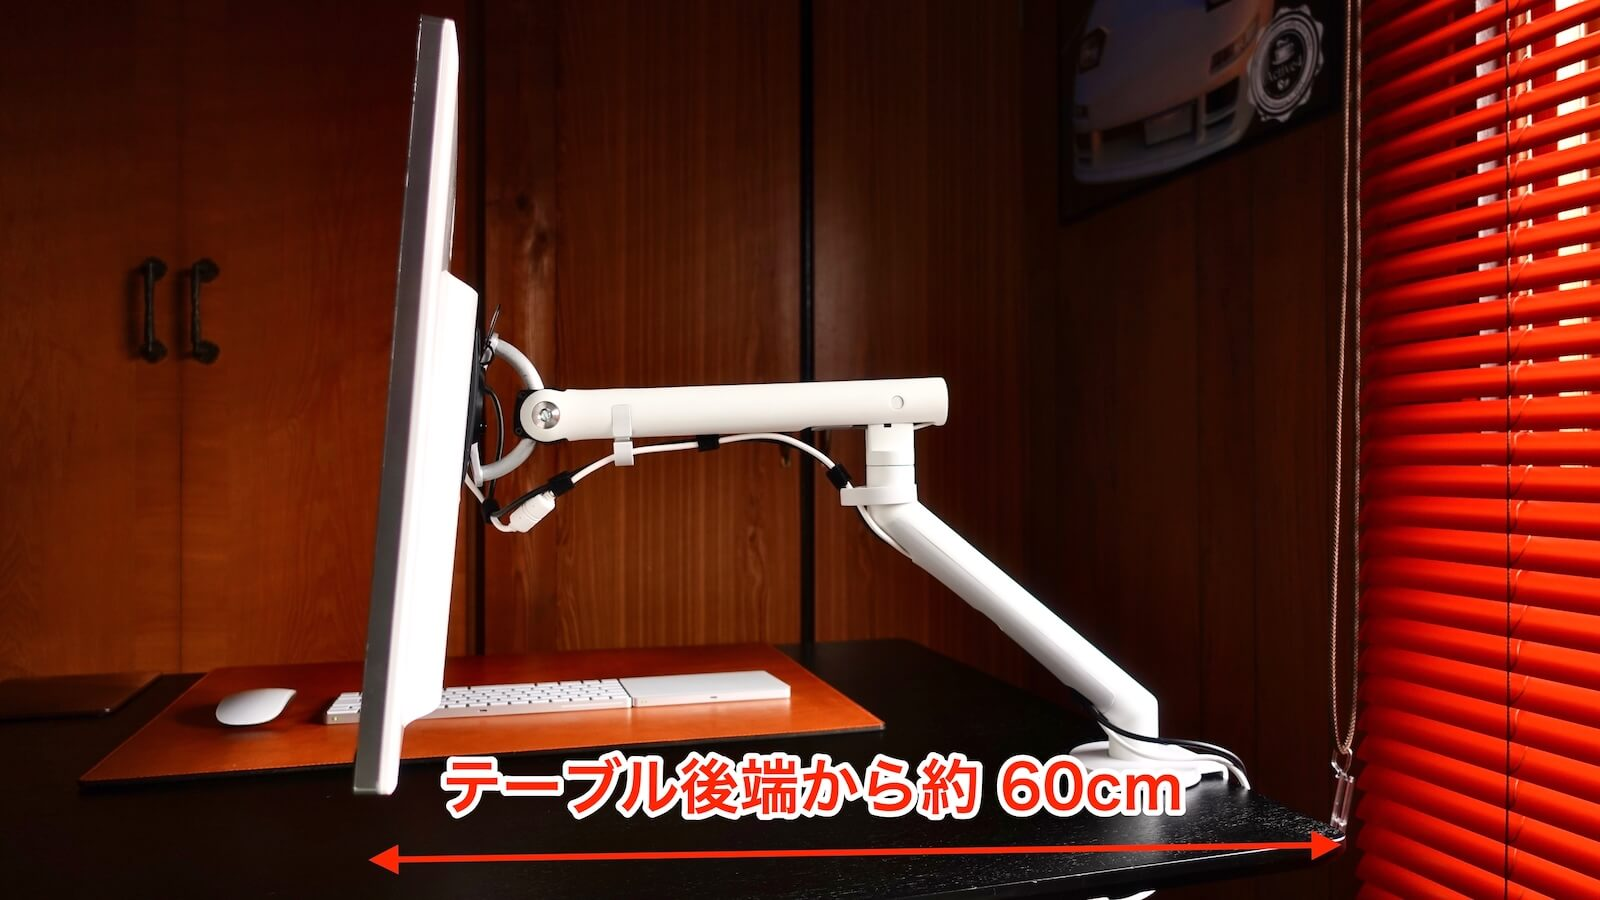 Herman Miller Flo Monitor Arm Arm 60 cm between the rear edge of the table and the monitor